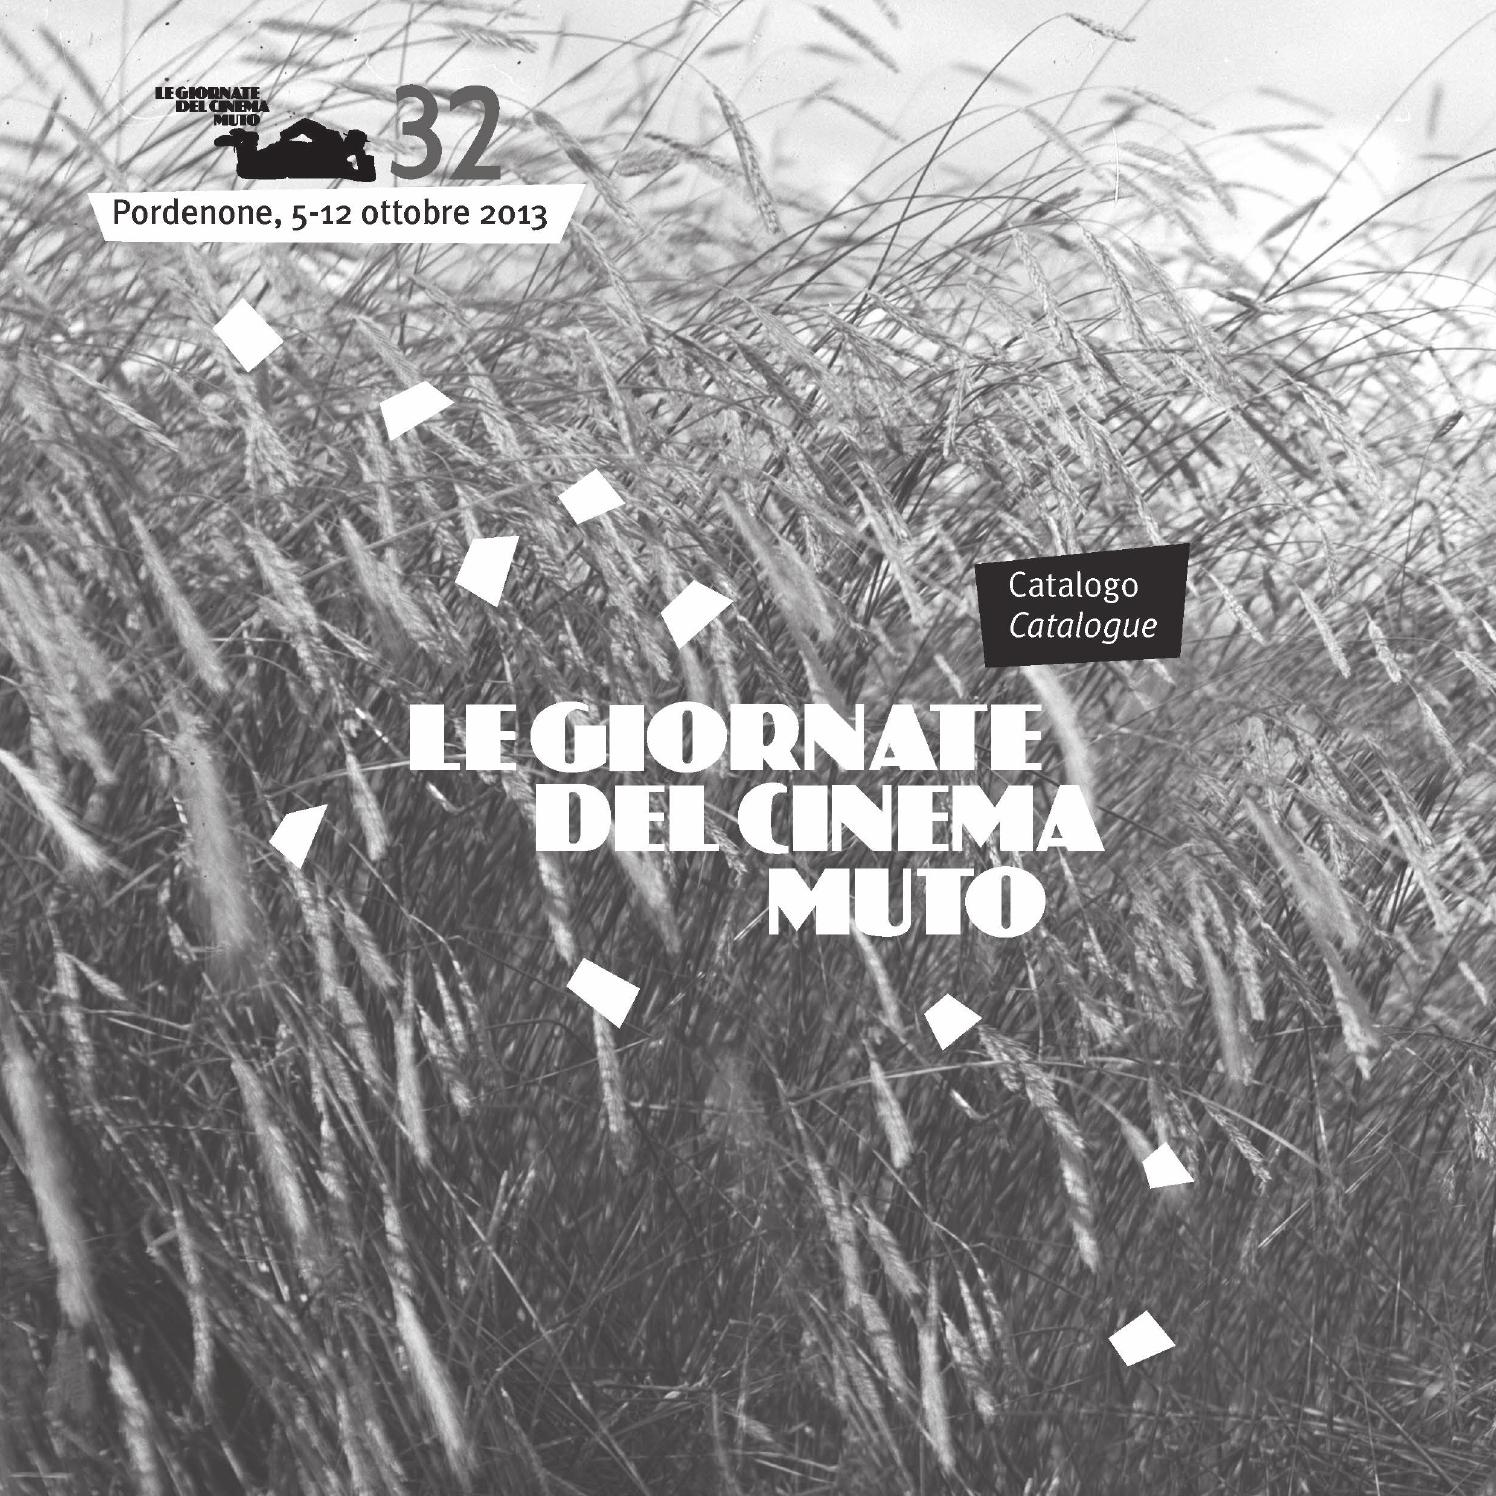 1602be6273 Catalogo/Catalogue by Le Giornate del Cinema Muto - issuu